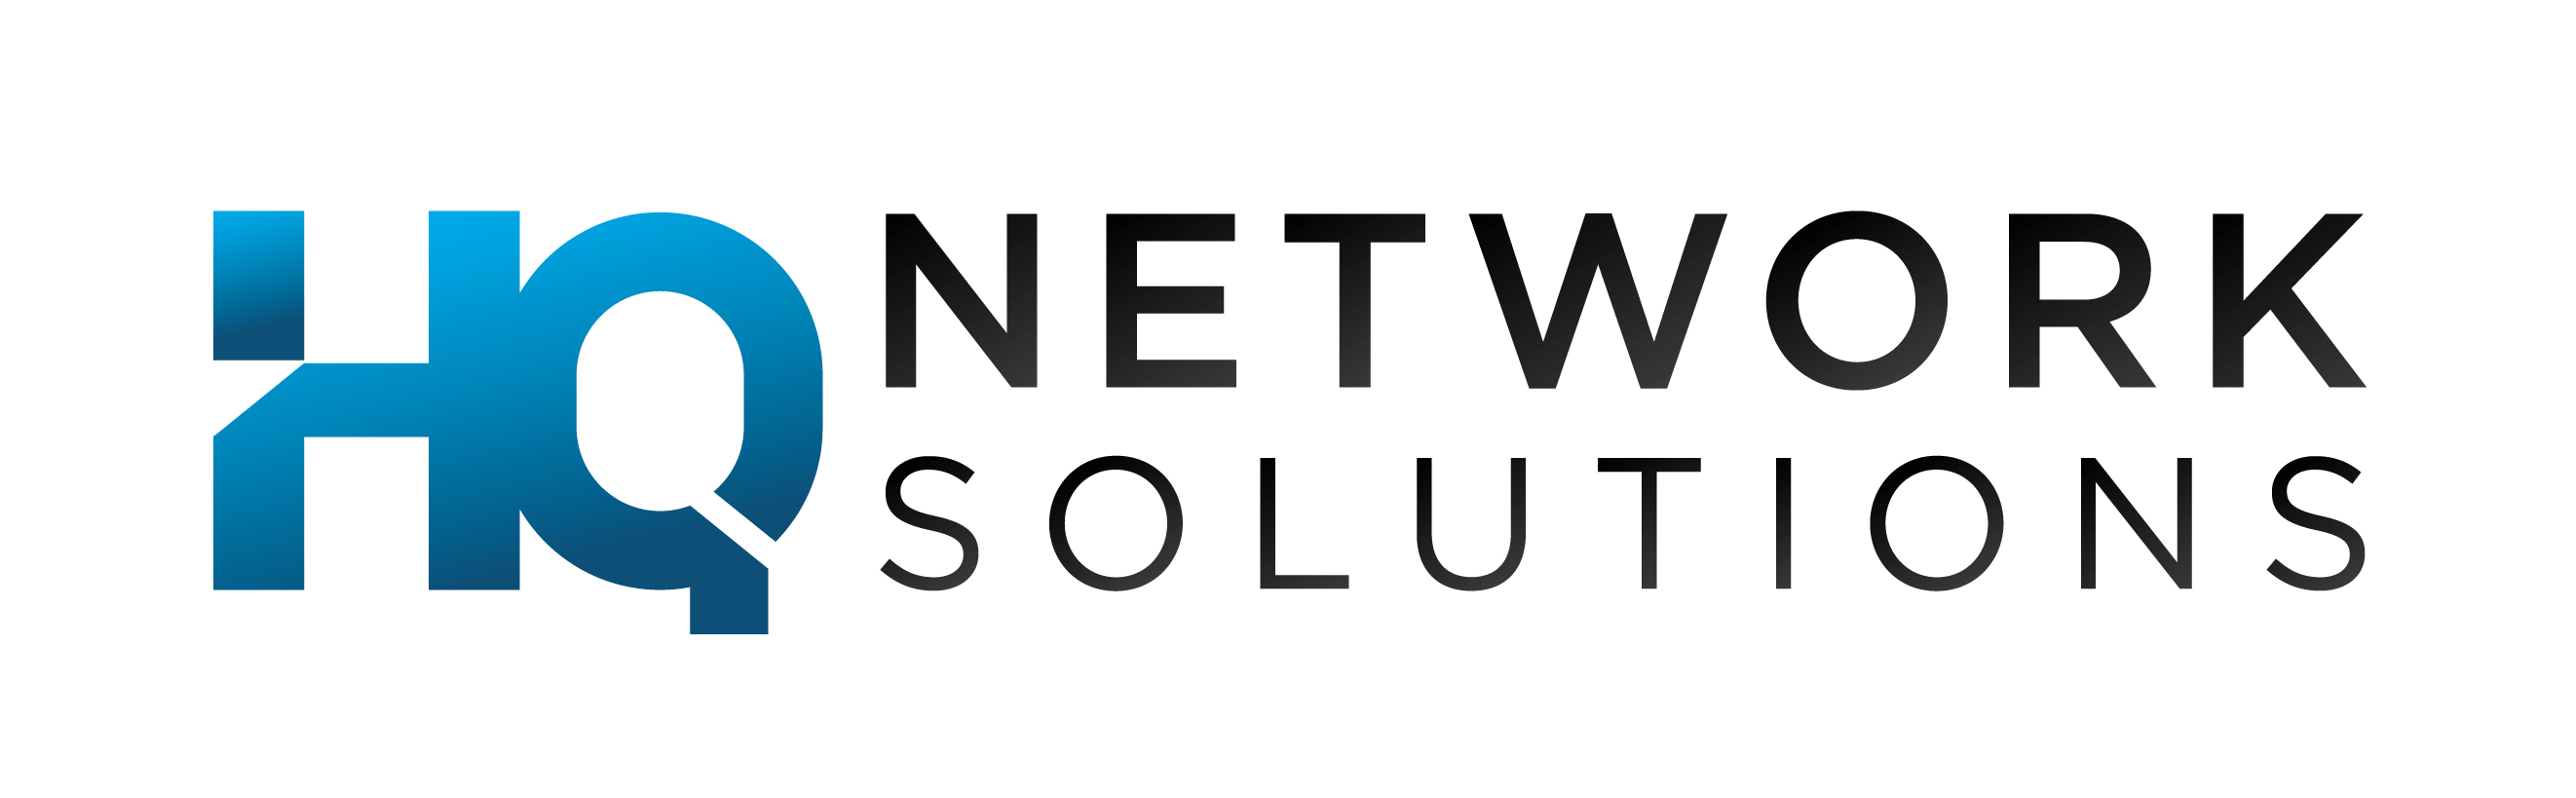 HQ Network Solutions.2017